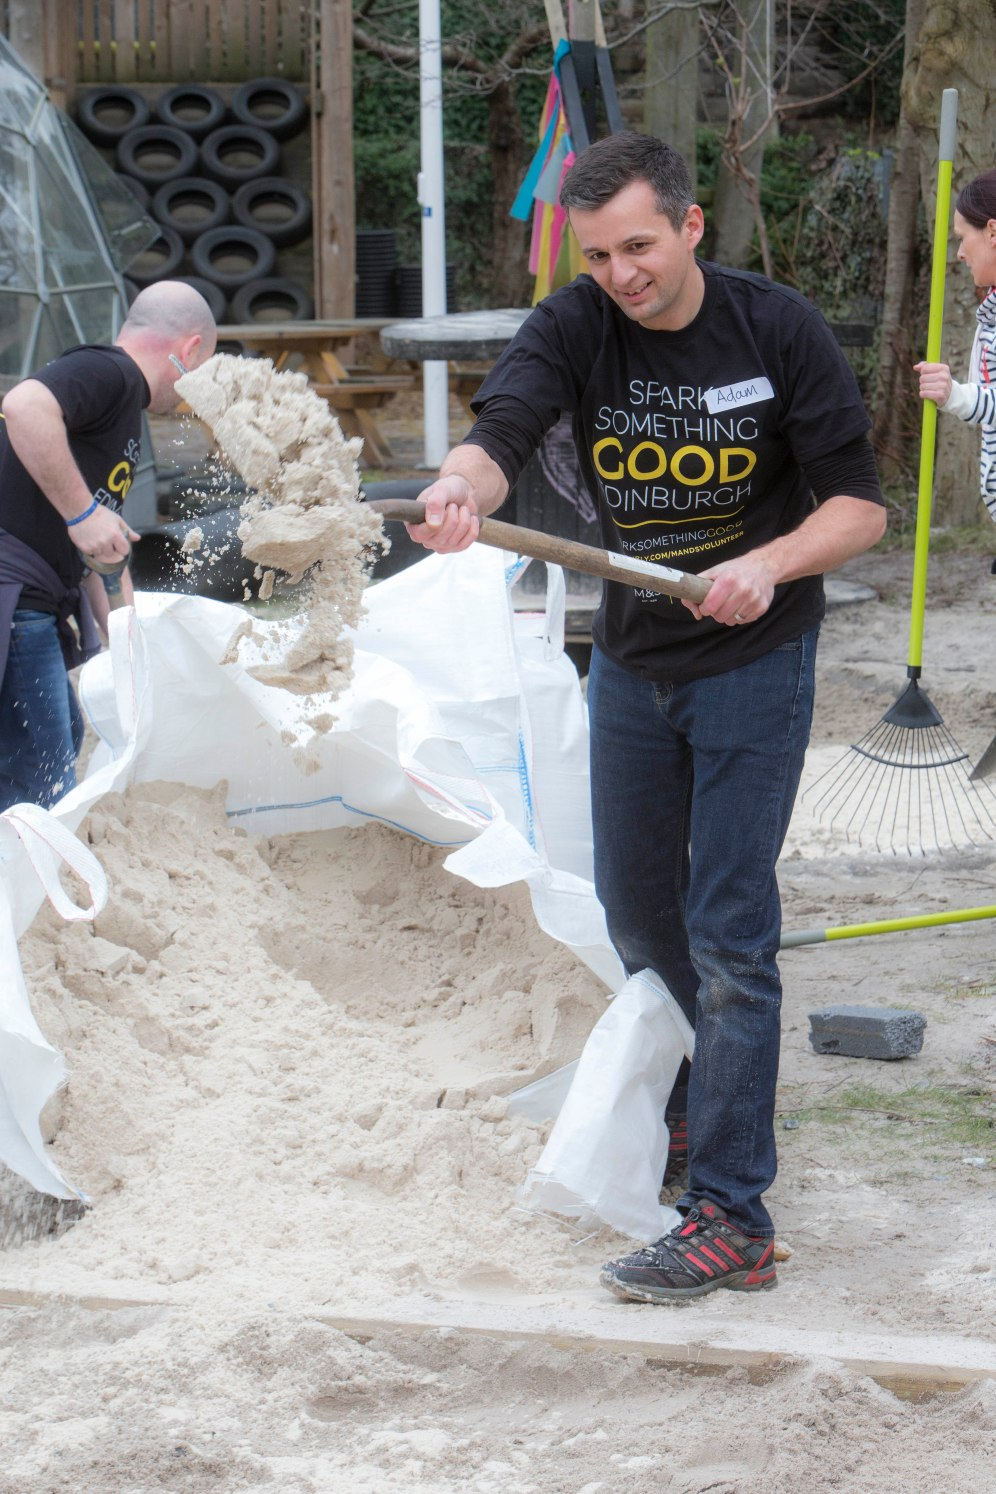 M&S volunteers created a world of difference at The Yard, Edinburgh for the #Sparksomethinggood campaign